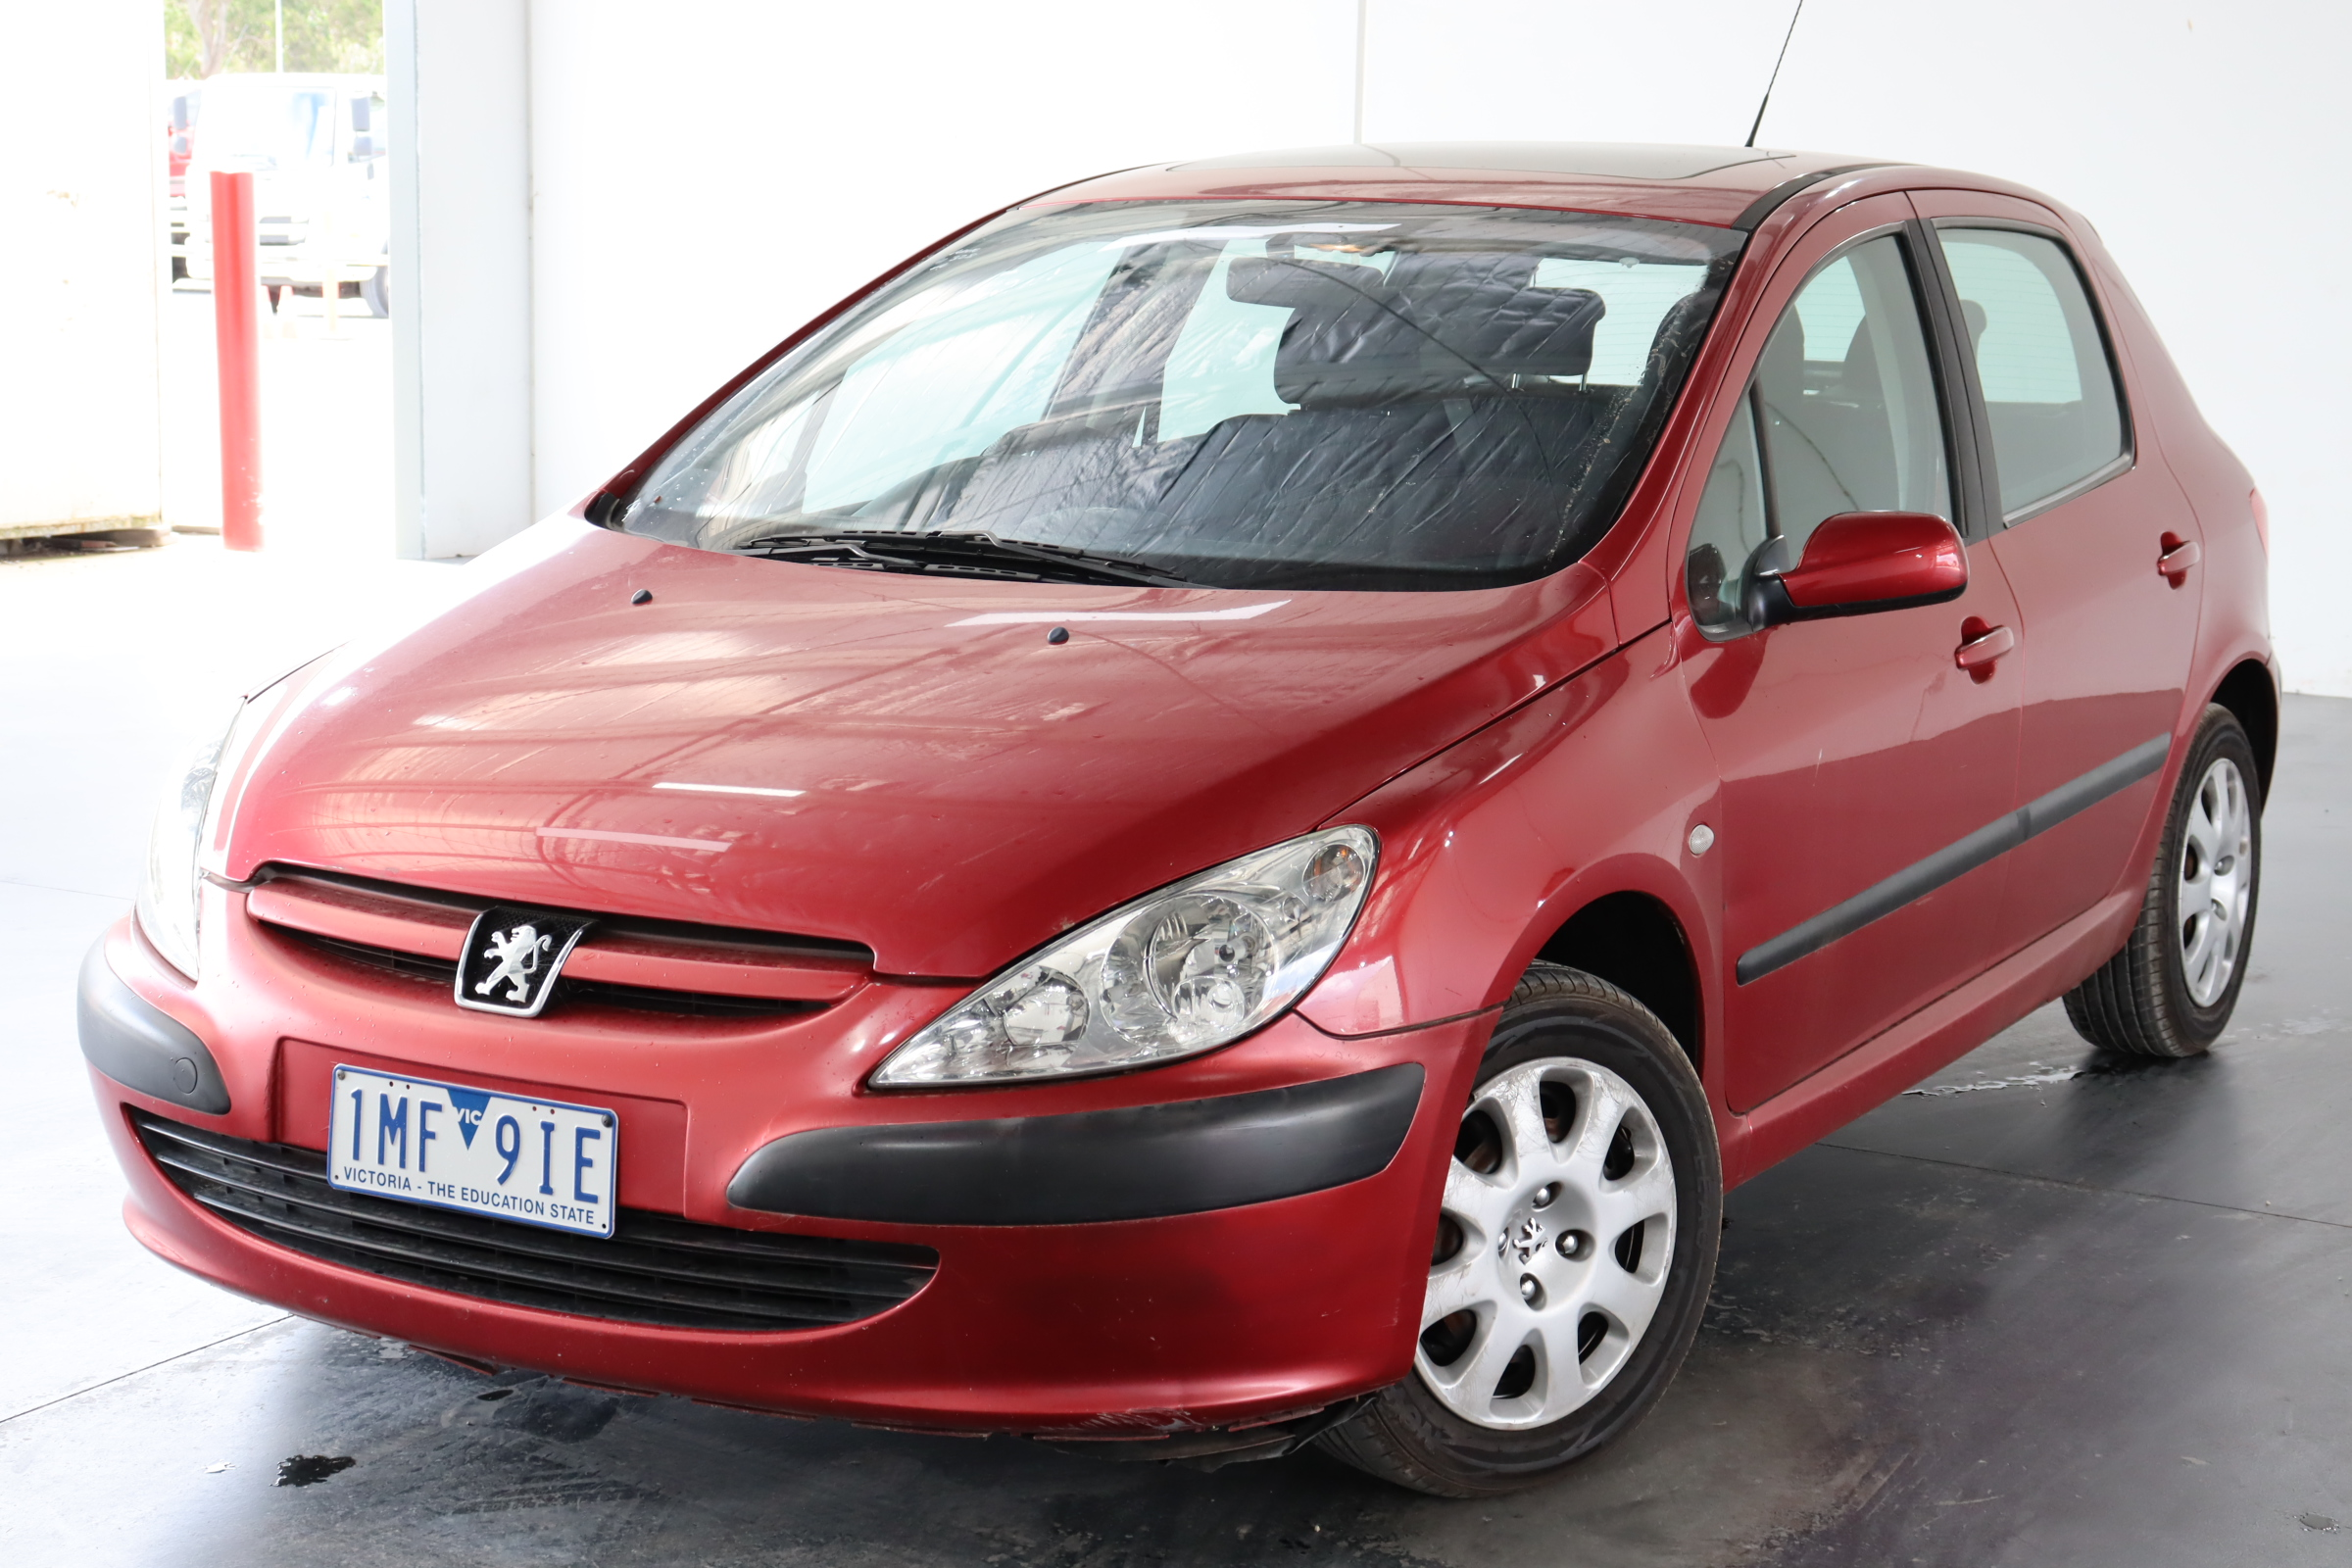 2003 Peugeot 307 1.6 Automatic Hatchback